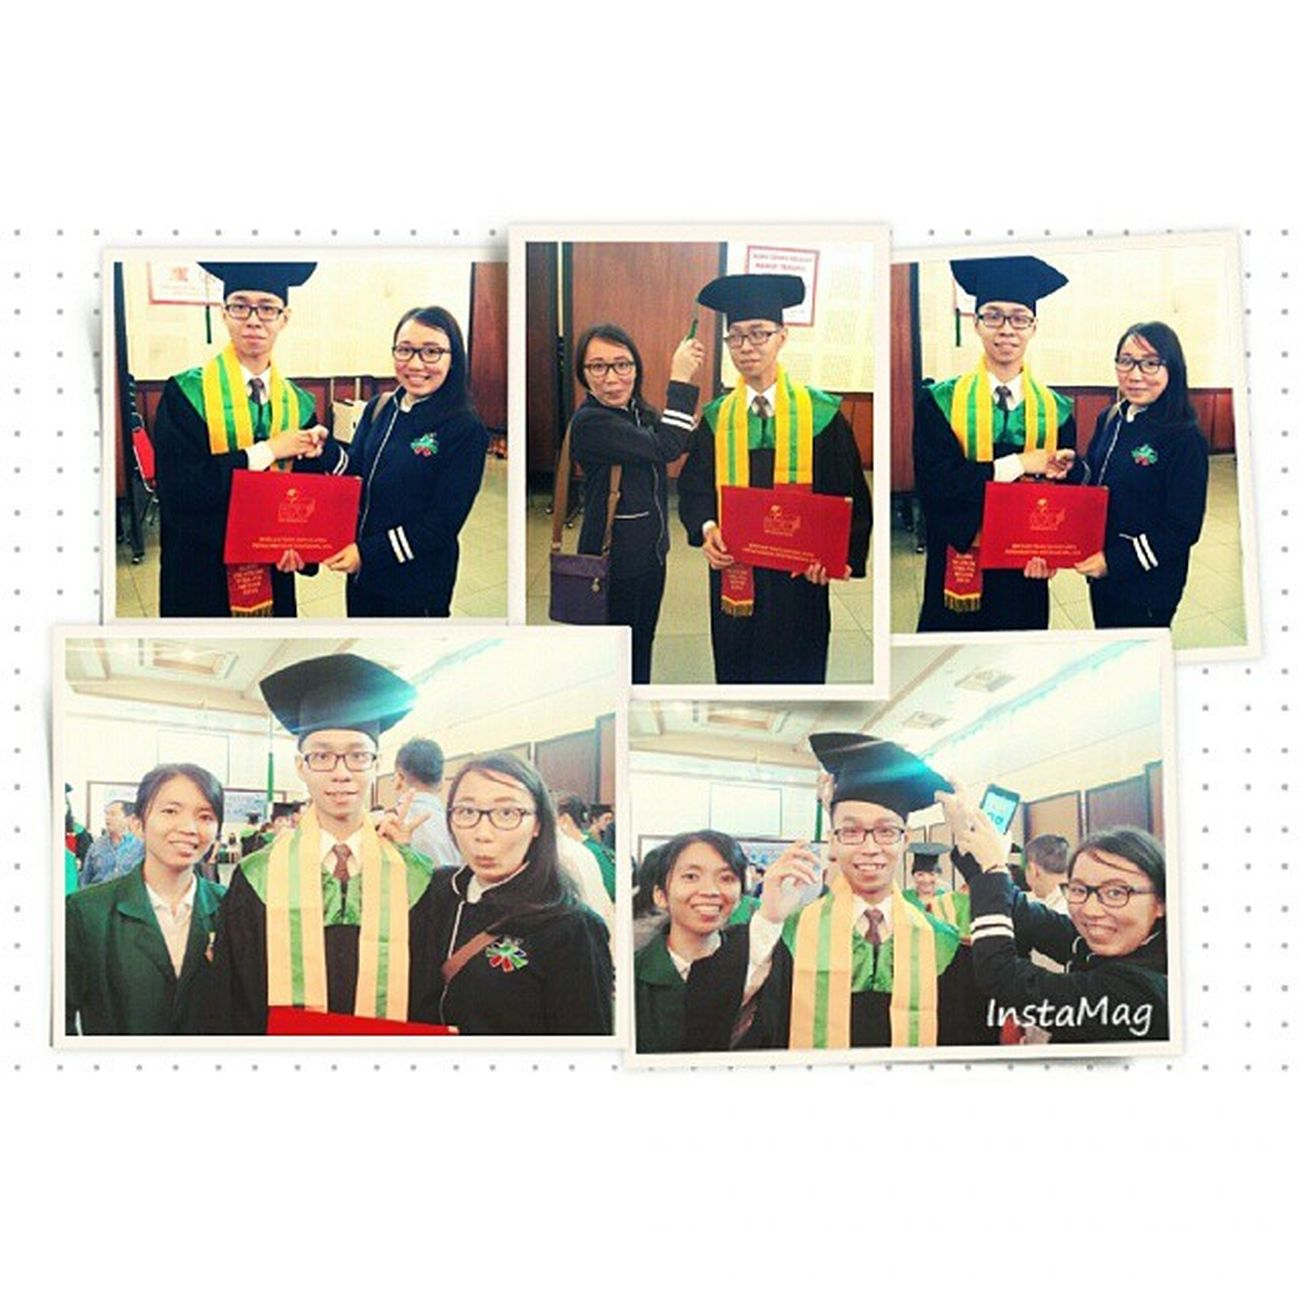 InstaMagAndroid Afterceremony Graduation STBA_PIA